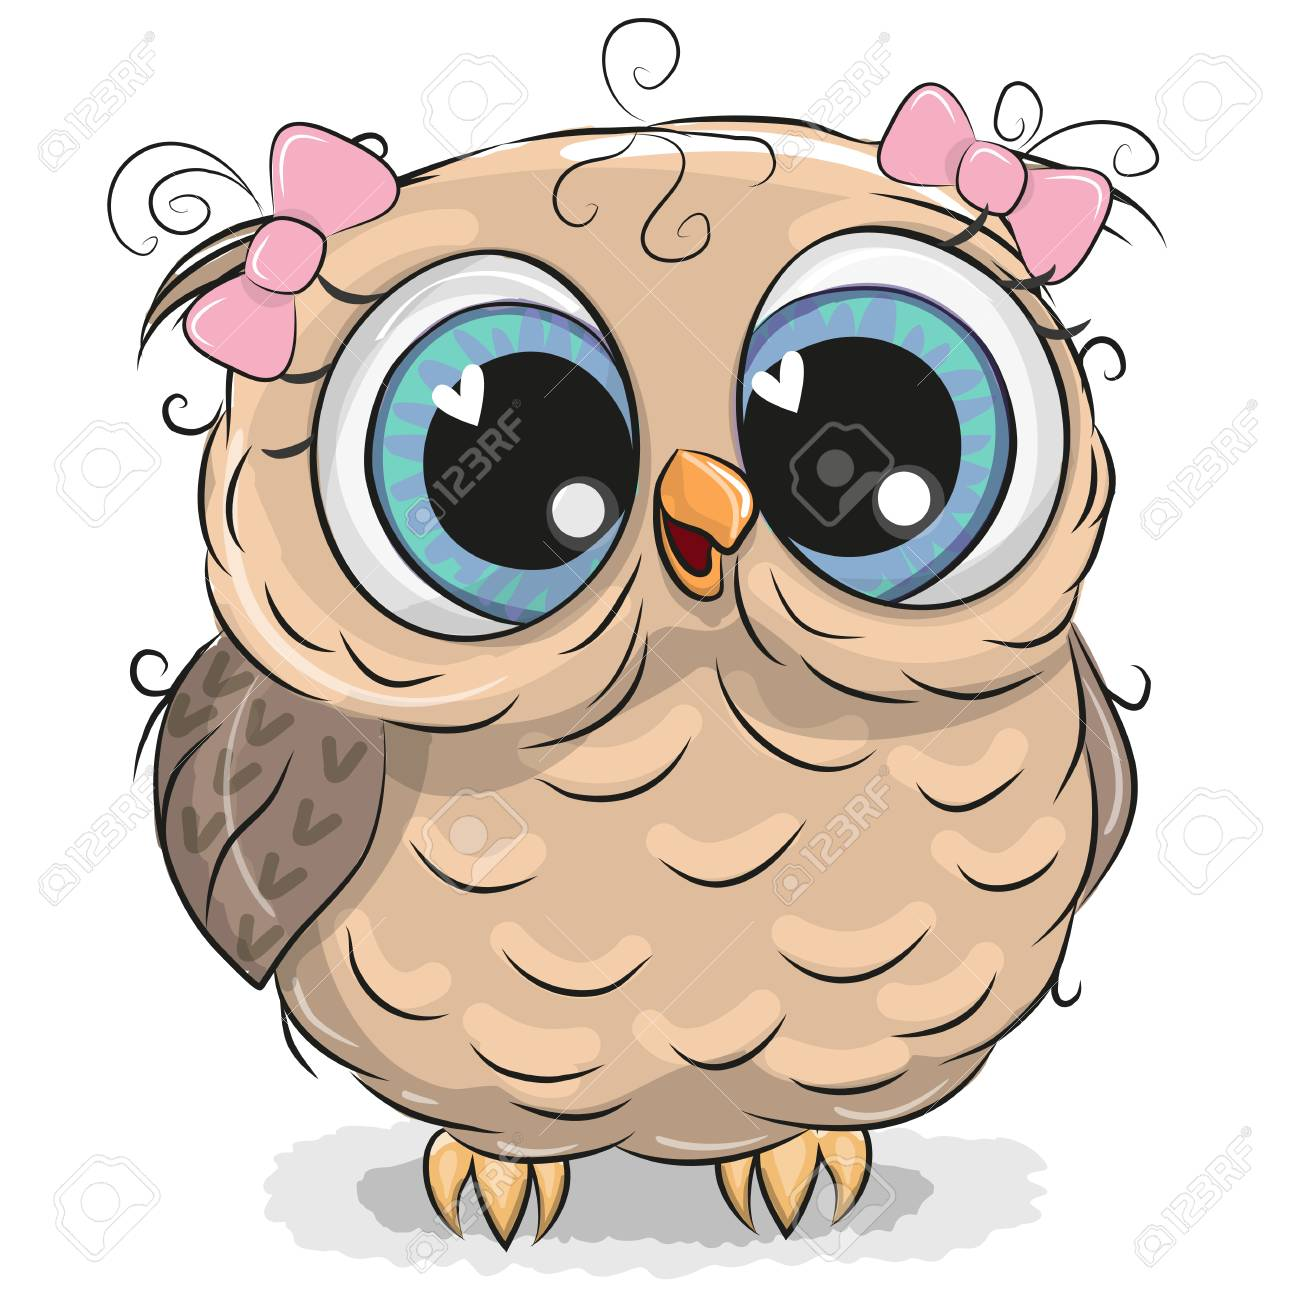 Image of: Vector Cute Cartoon Owl Girl Isolated On White Background Stock Vector 96284109 123rfcom Cute Cartoon Owl Girl Isolated On White Background Royalty Free